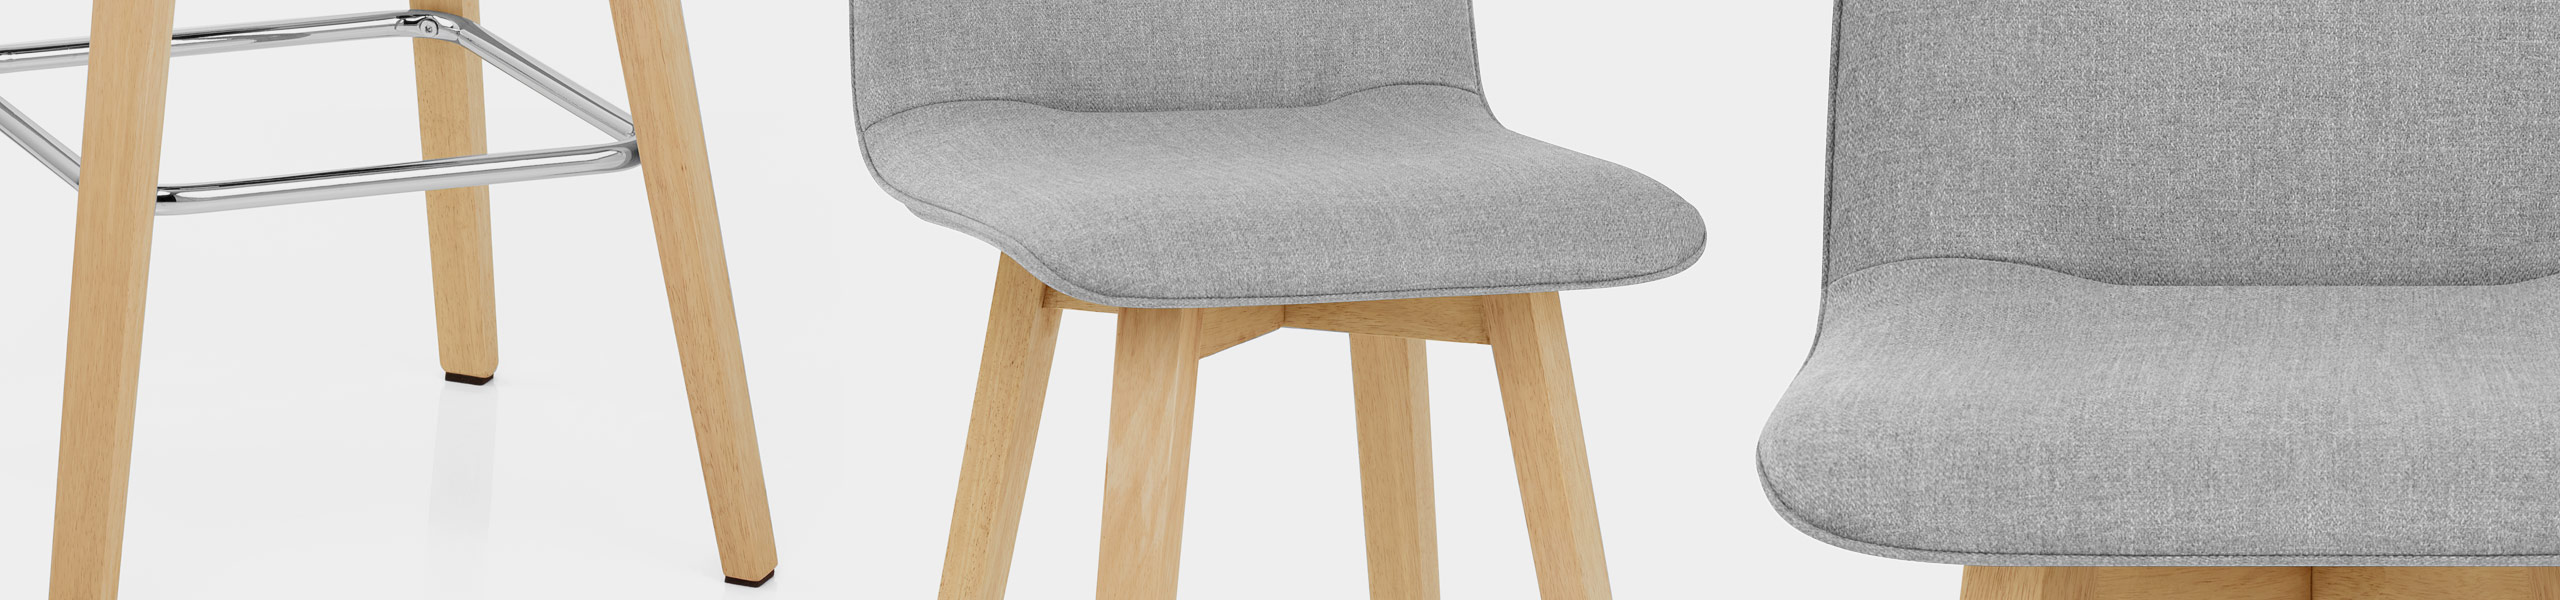 Tide Wooden Stool Grey Fabric Video Banner